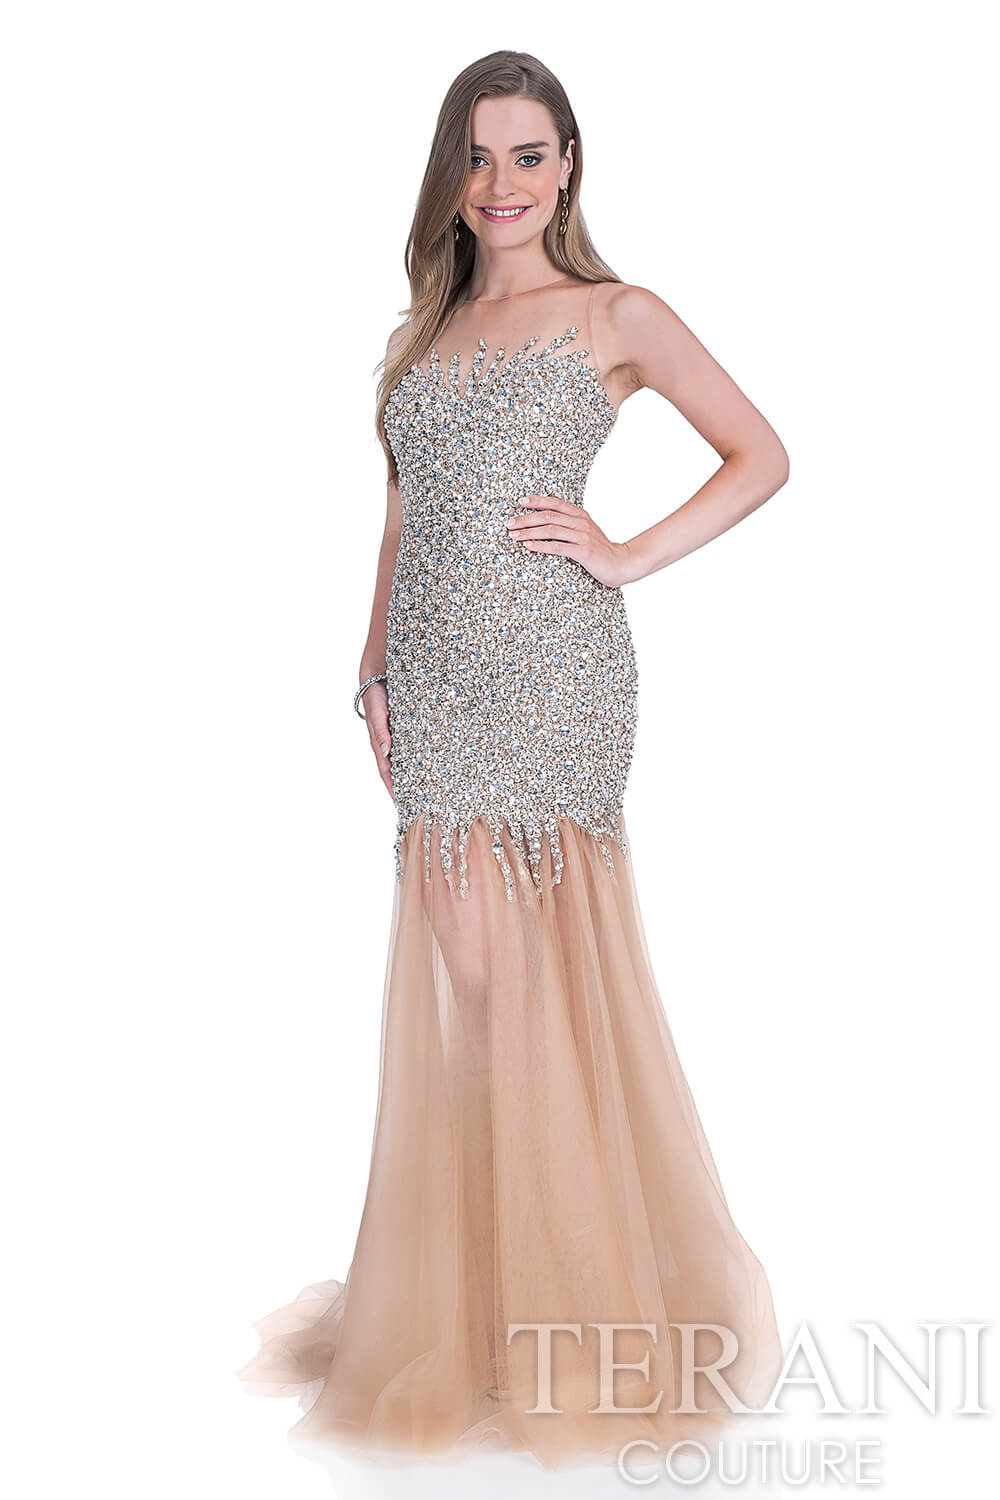 Prom Dresses In Toronto 2016-2017- USA- UK- Short- Long - Best